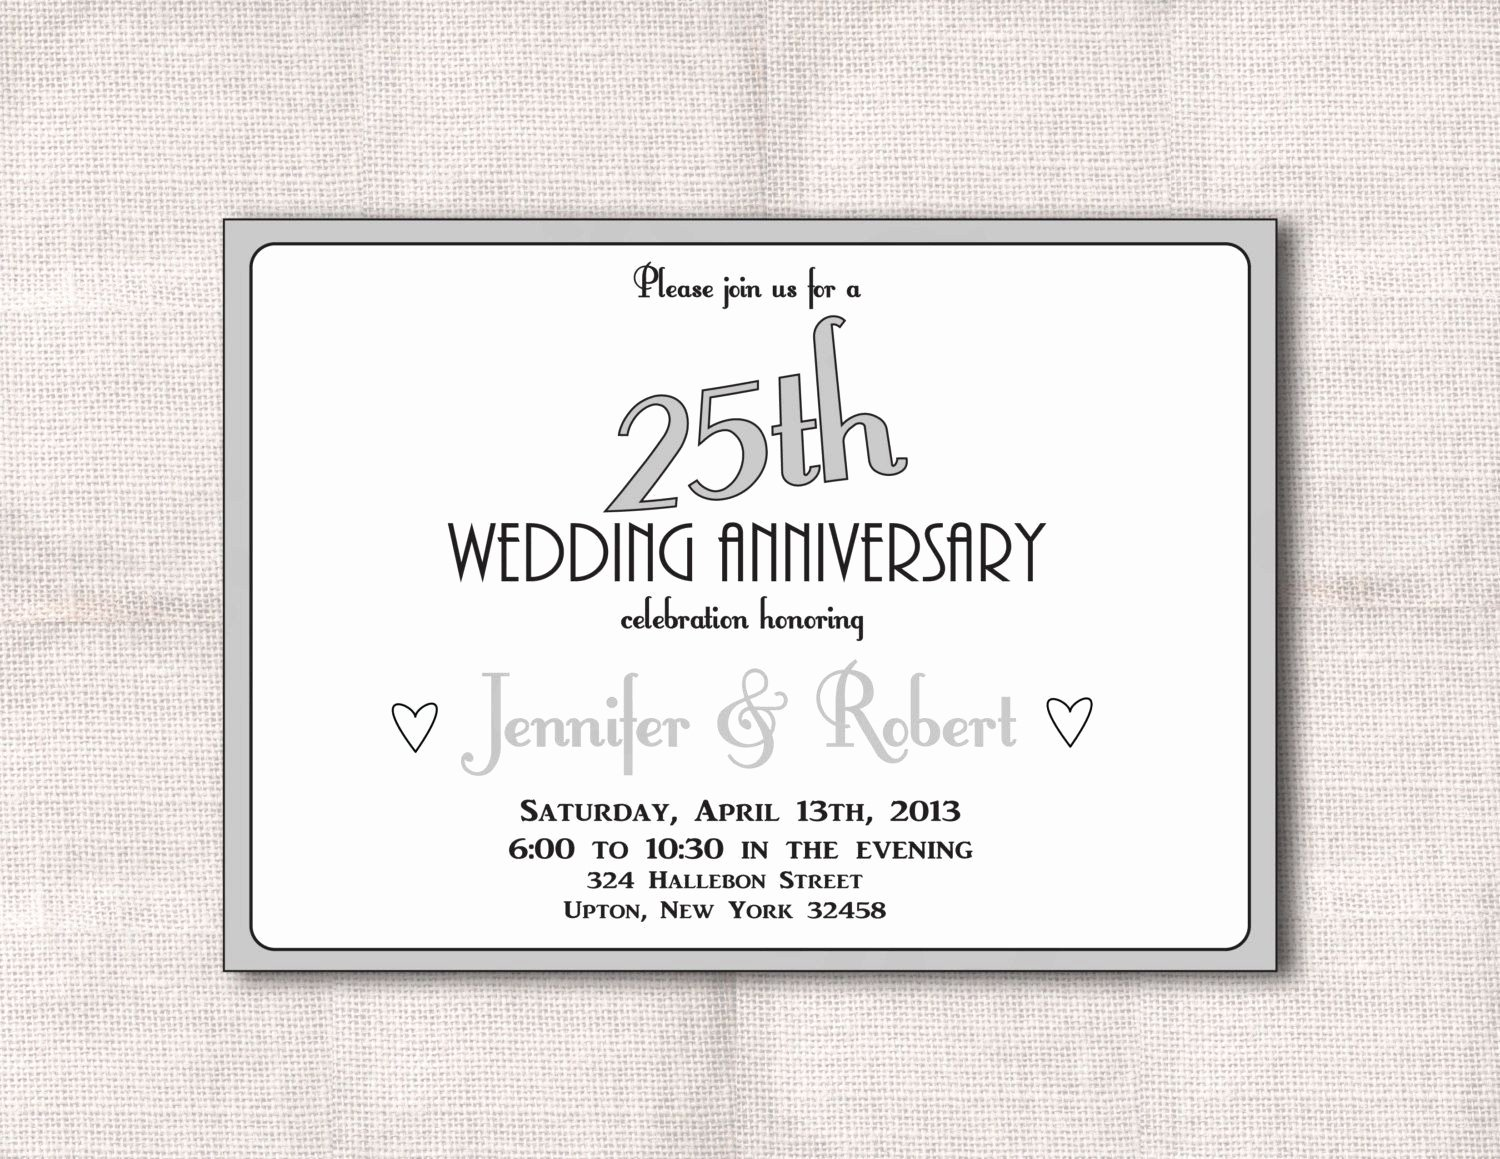 Wedding Anniversary Invite Template Fresh Surprise 25th Wedding Anniversary Invitation Templates